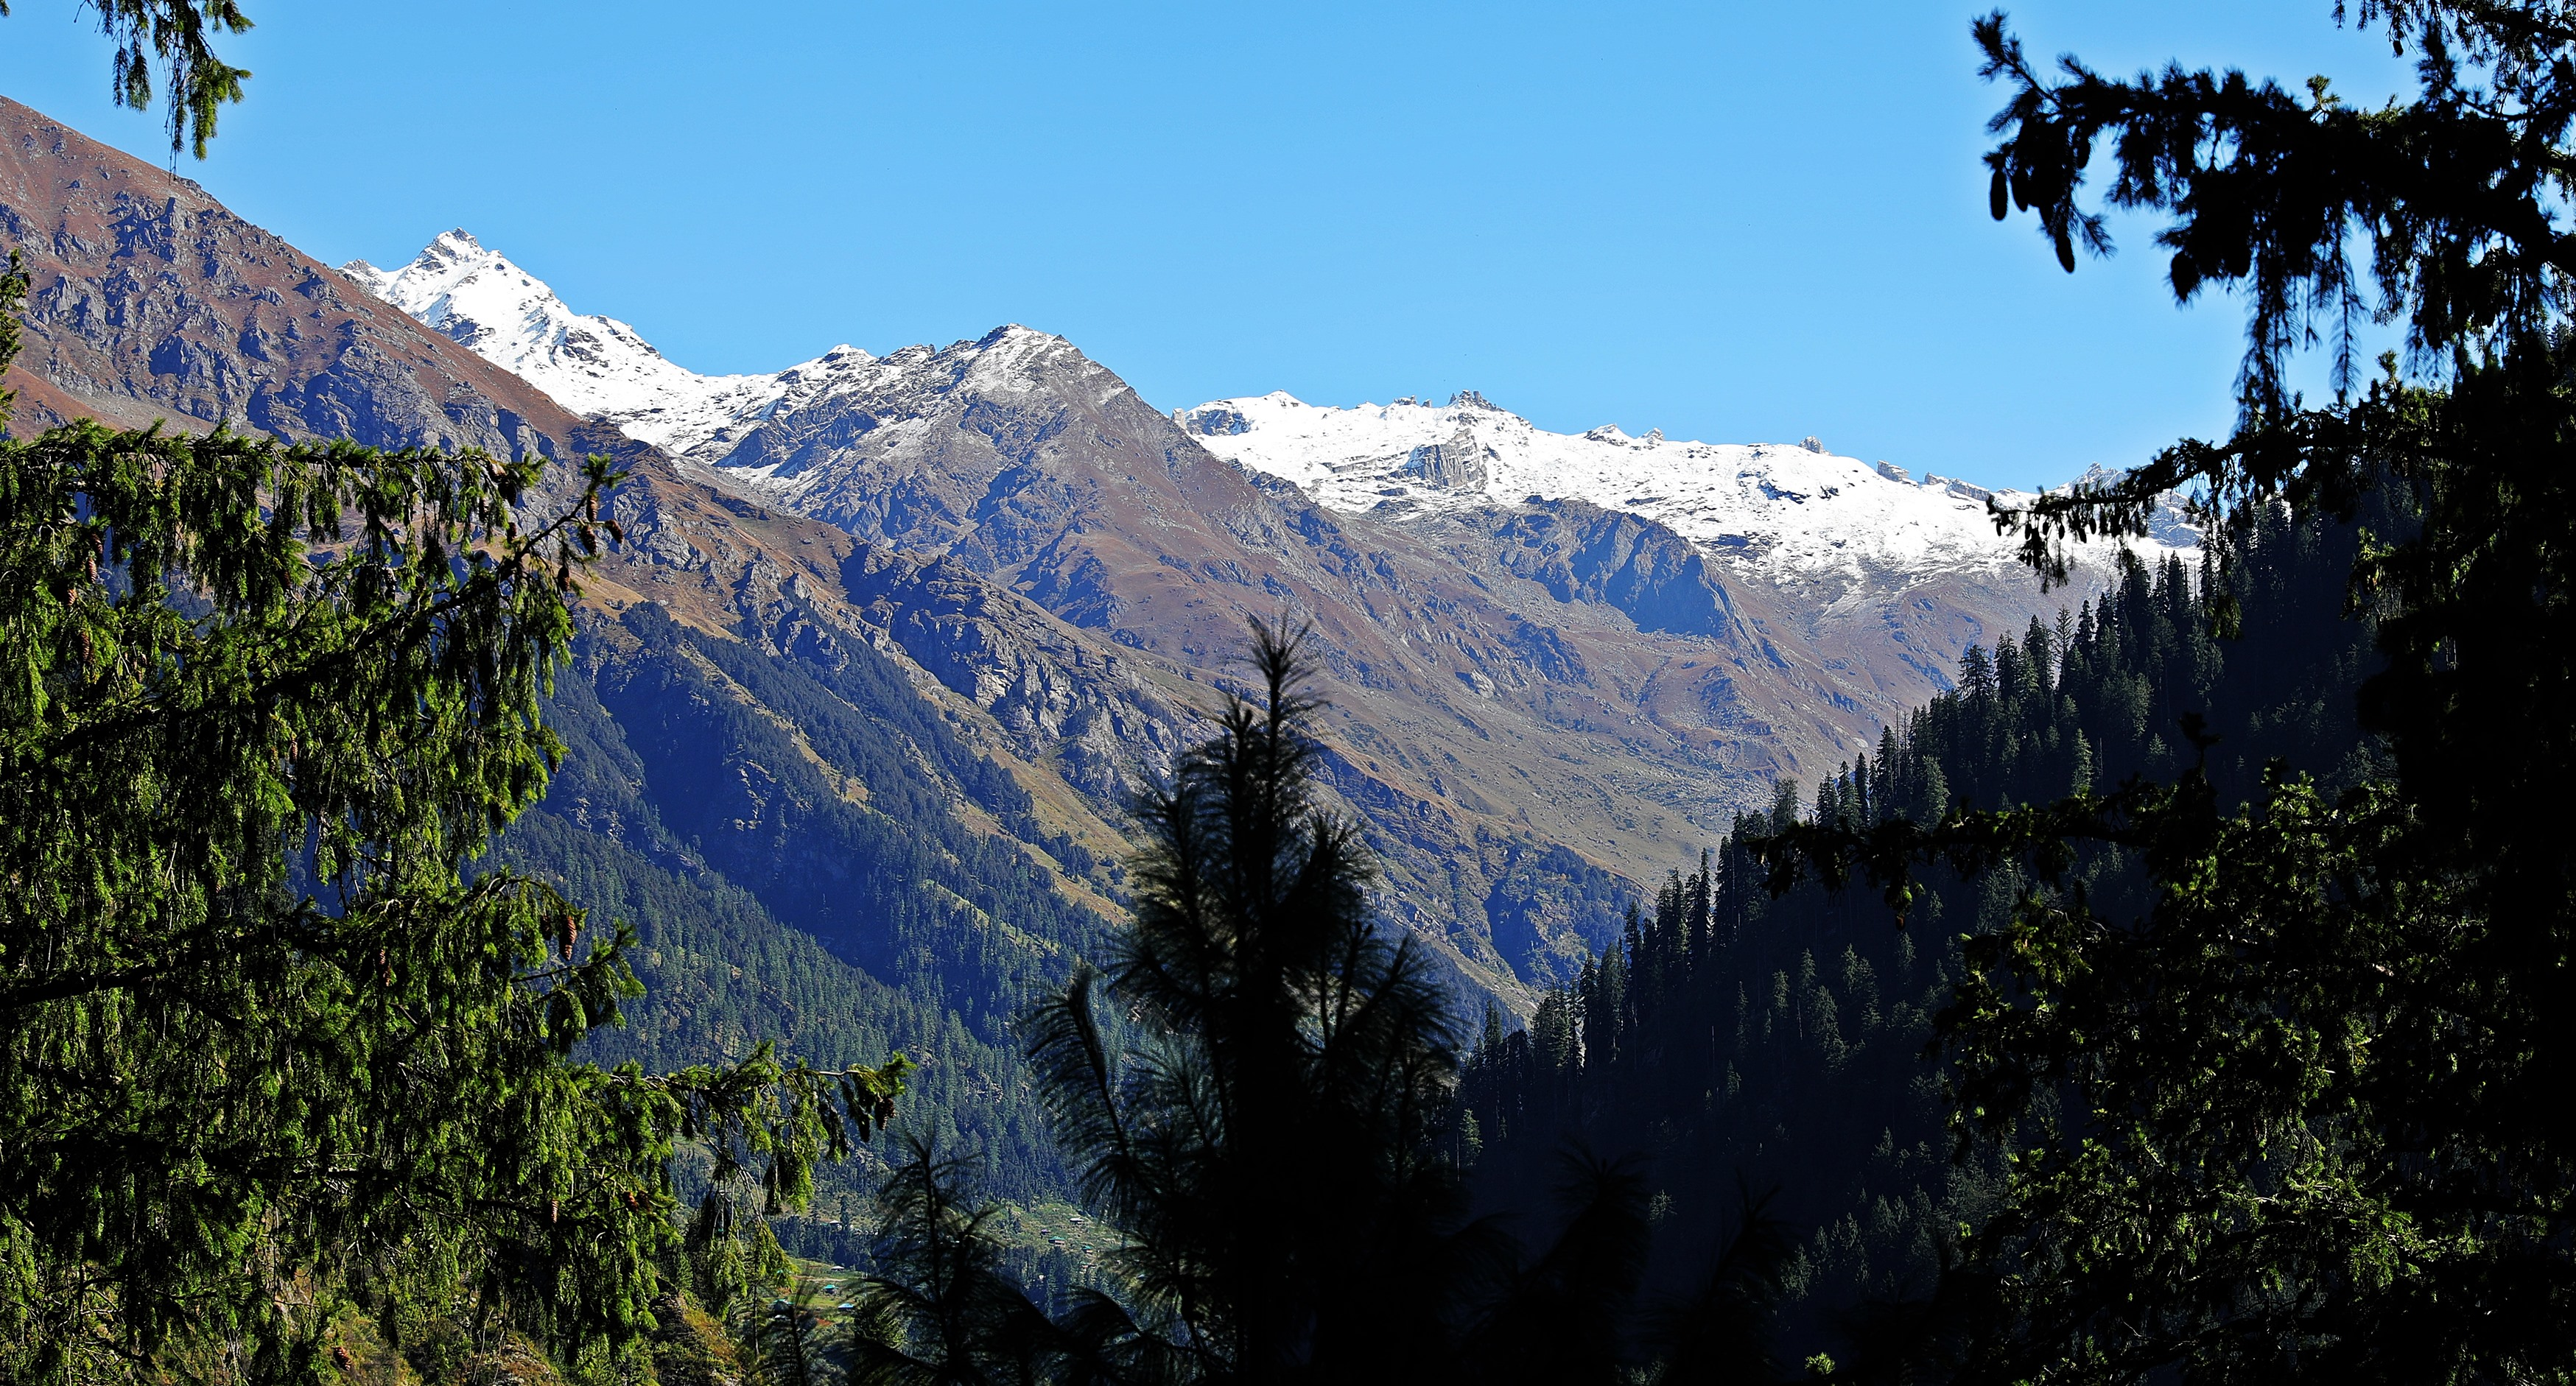 View from Malana, Himachal Pradesh